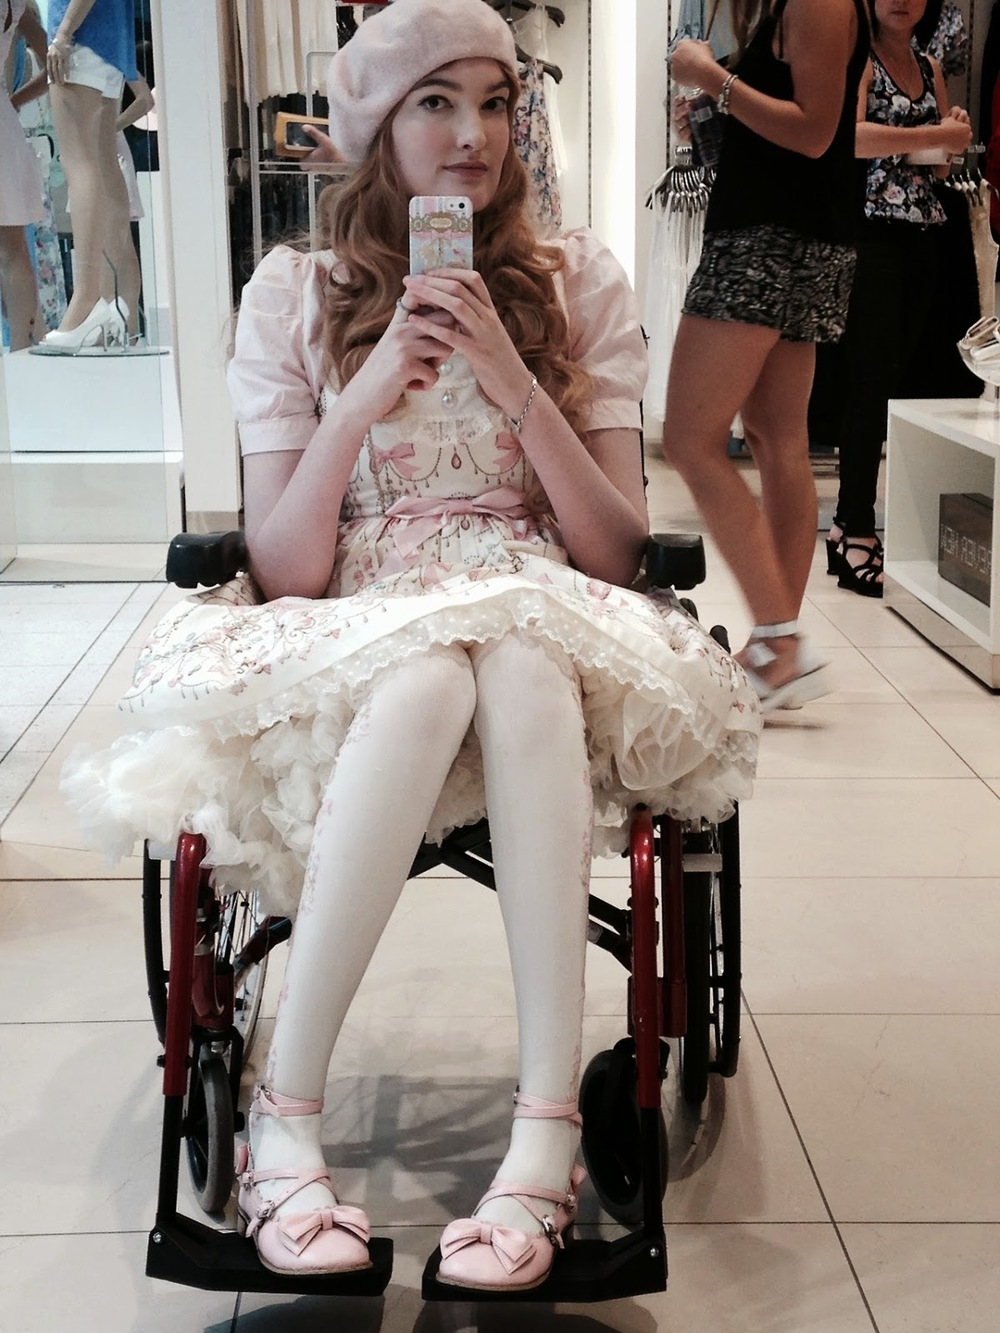 Young white woman sitting in a wheelchair taking a selfie with a smartphone, wearing a white frock dress and light pink hat